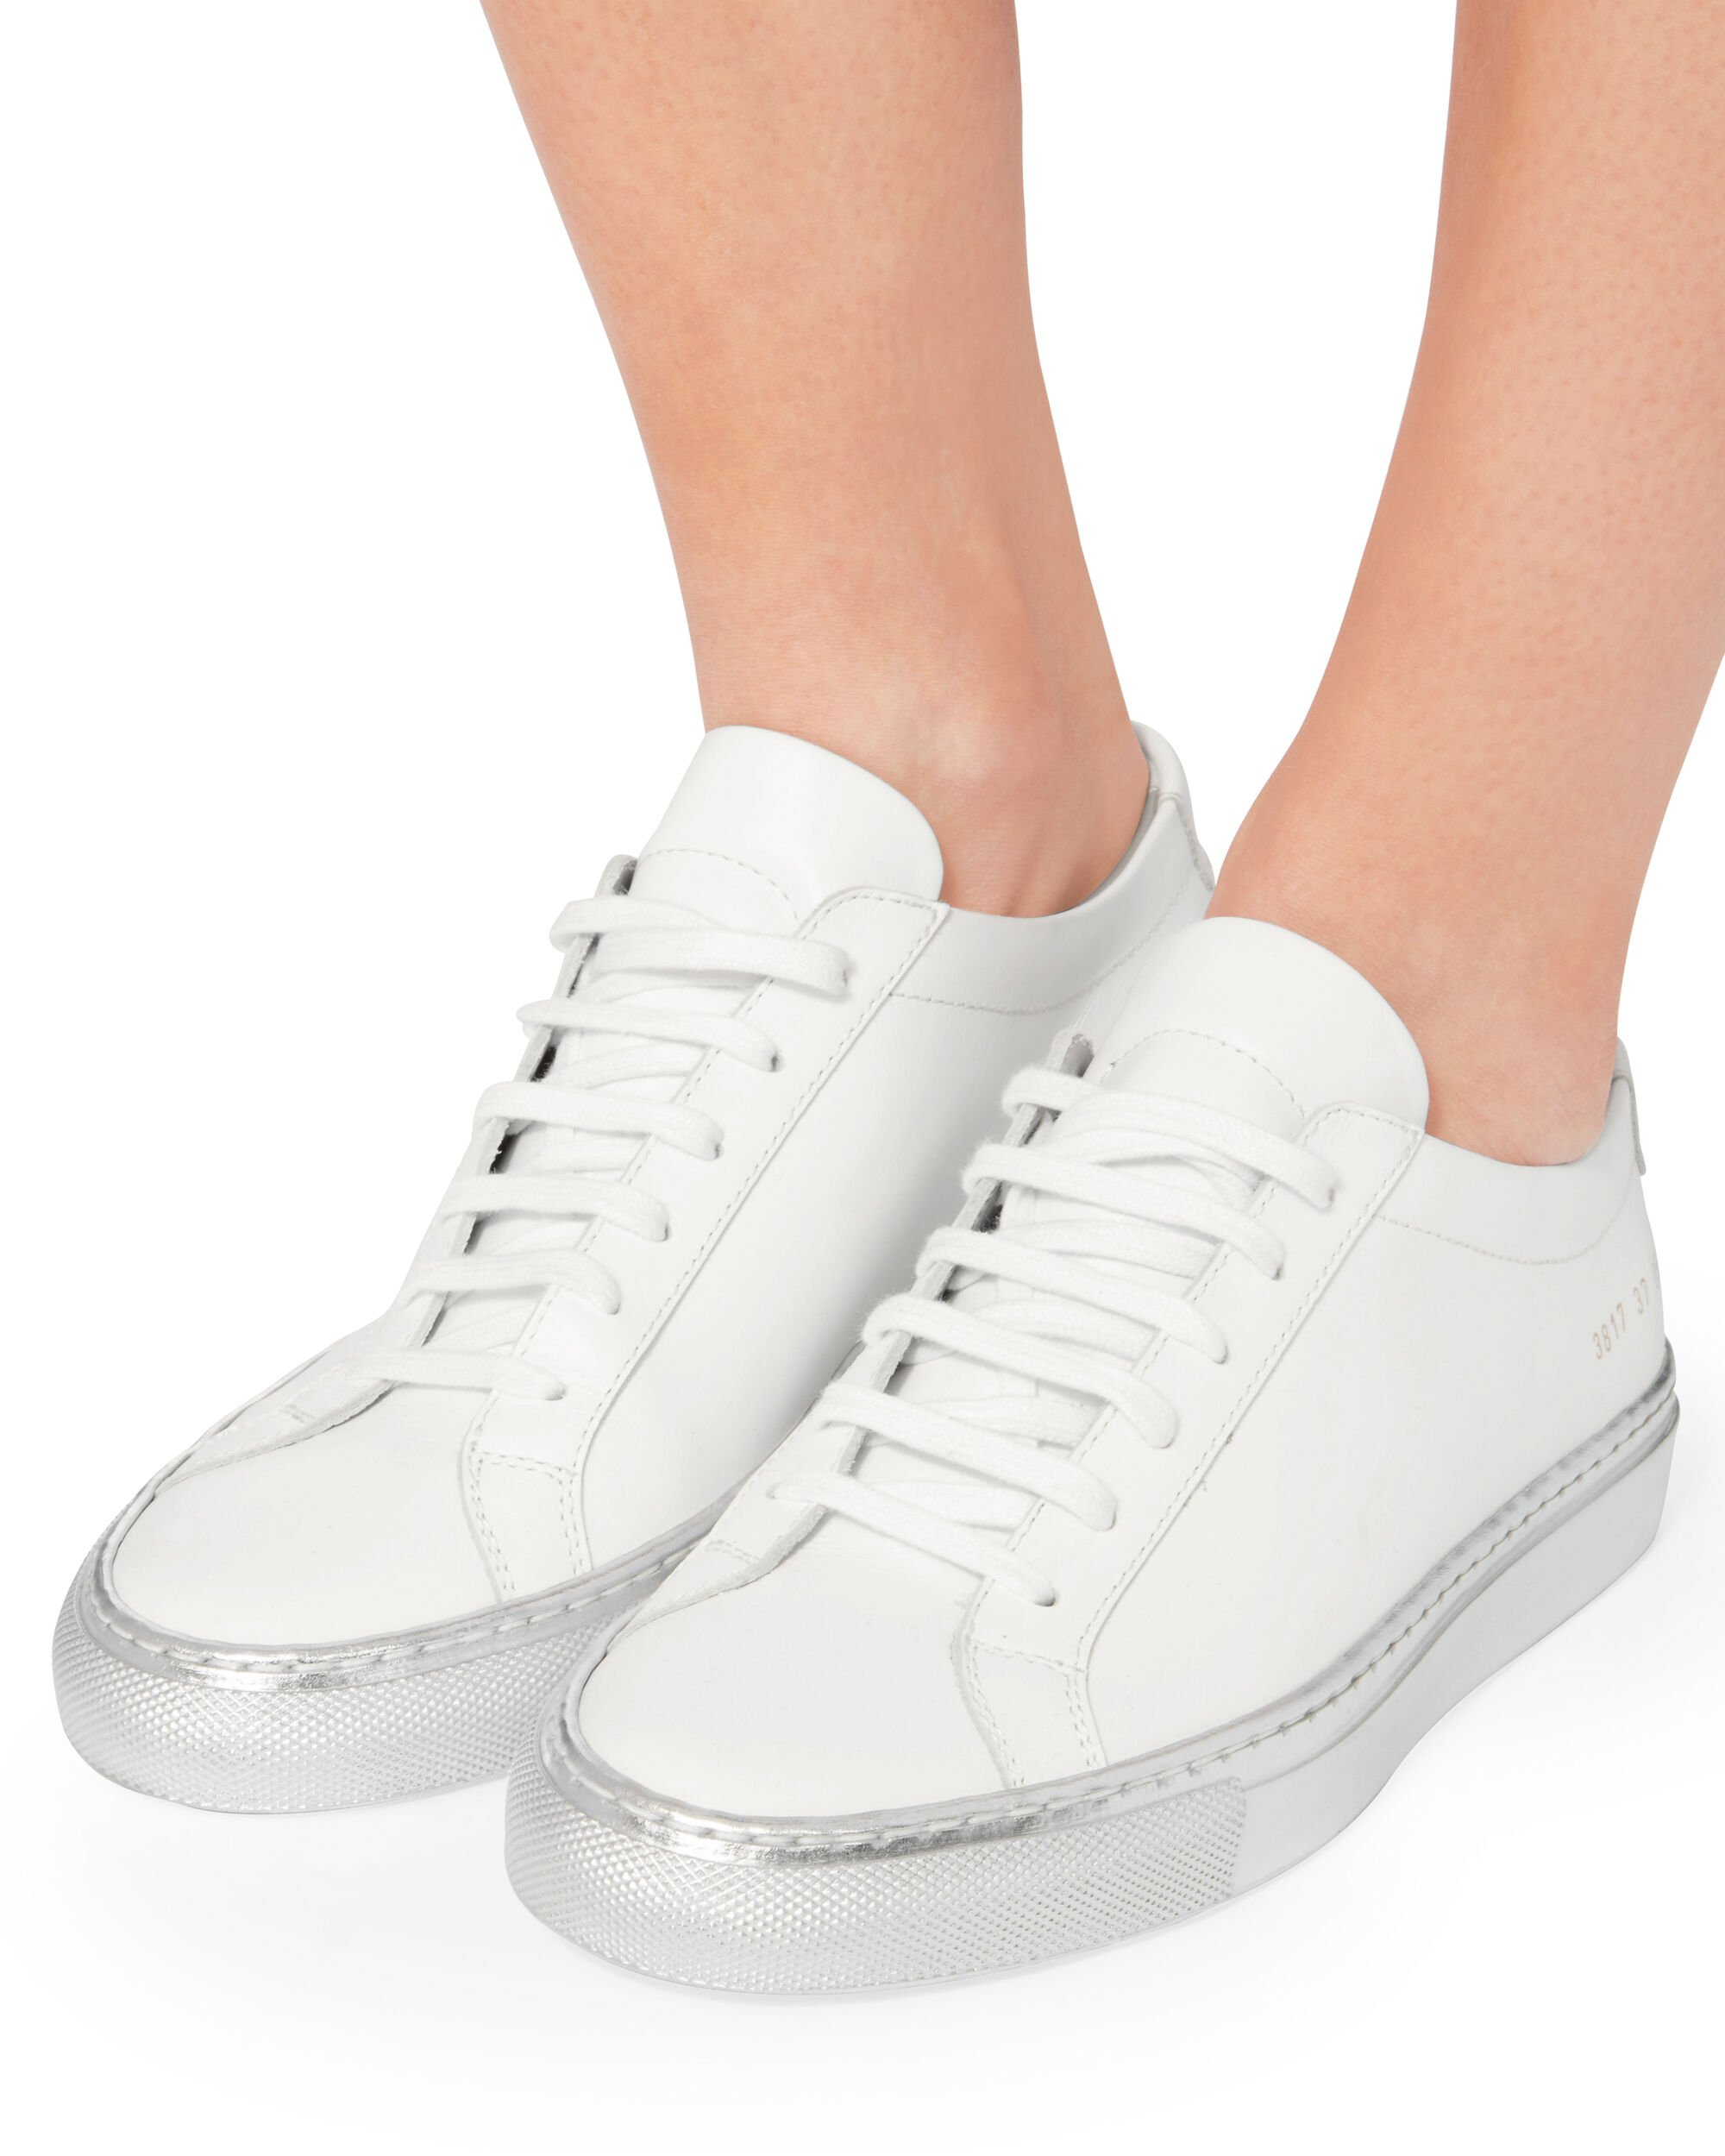 Achilles Silver Sole Low-Top Sneakers, WHITE 2, hi-res